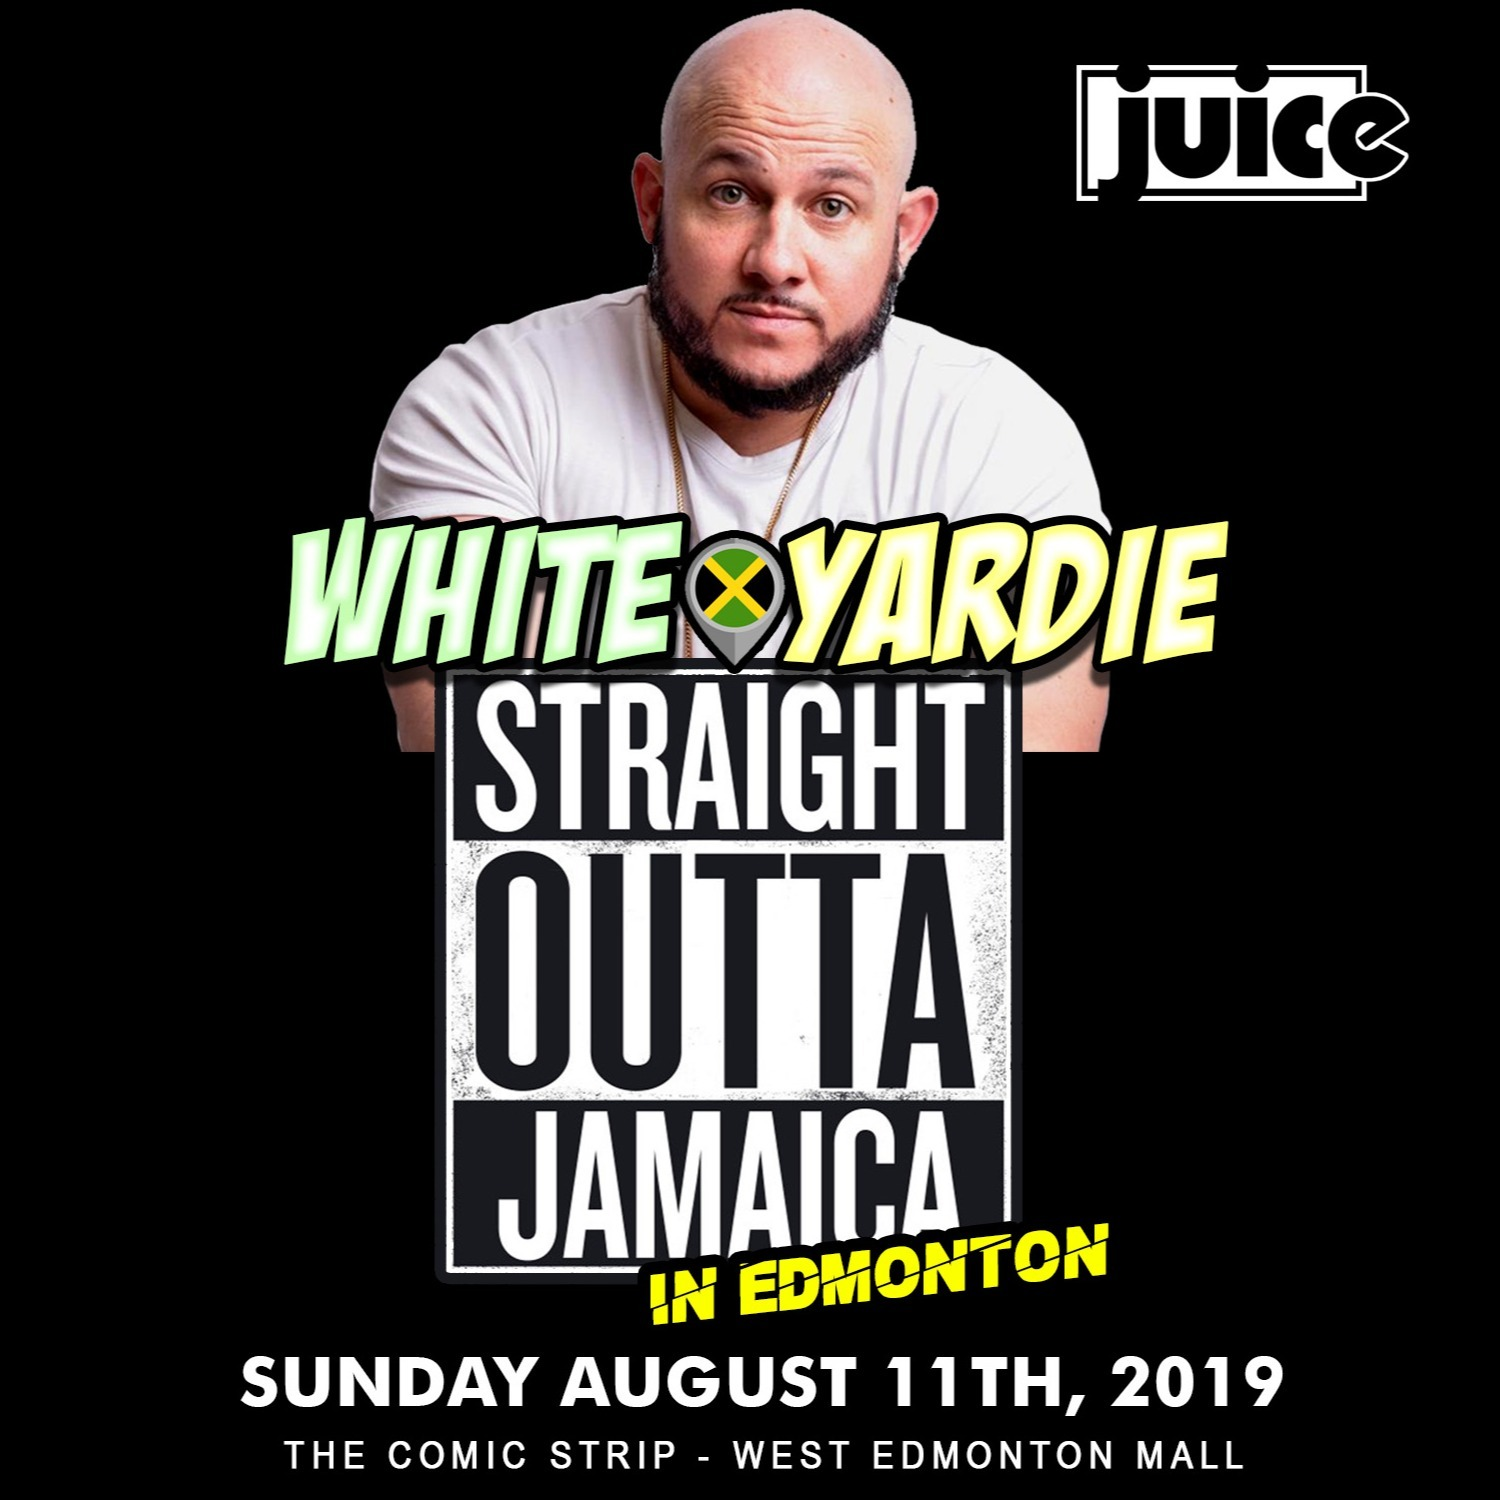 Juice Comedy presents WHITE YARDIE'S 'Straight Outta Jamaica' - EDMONTON